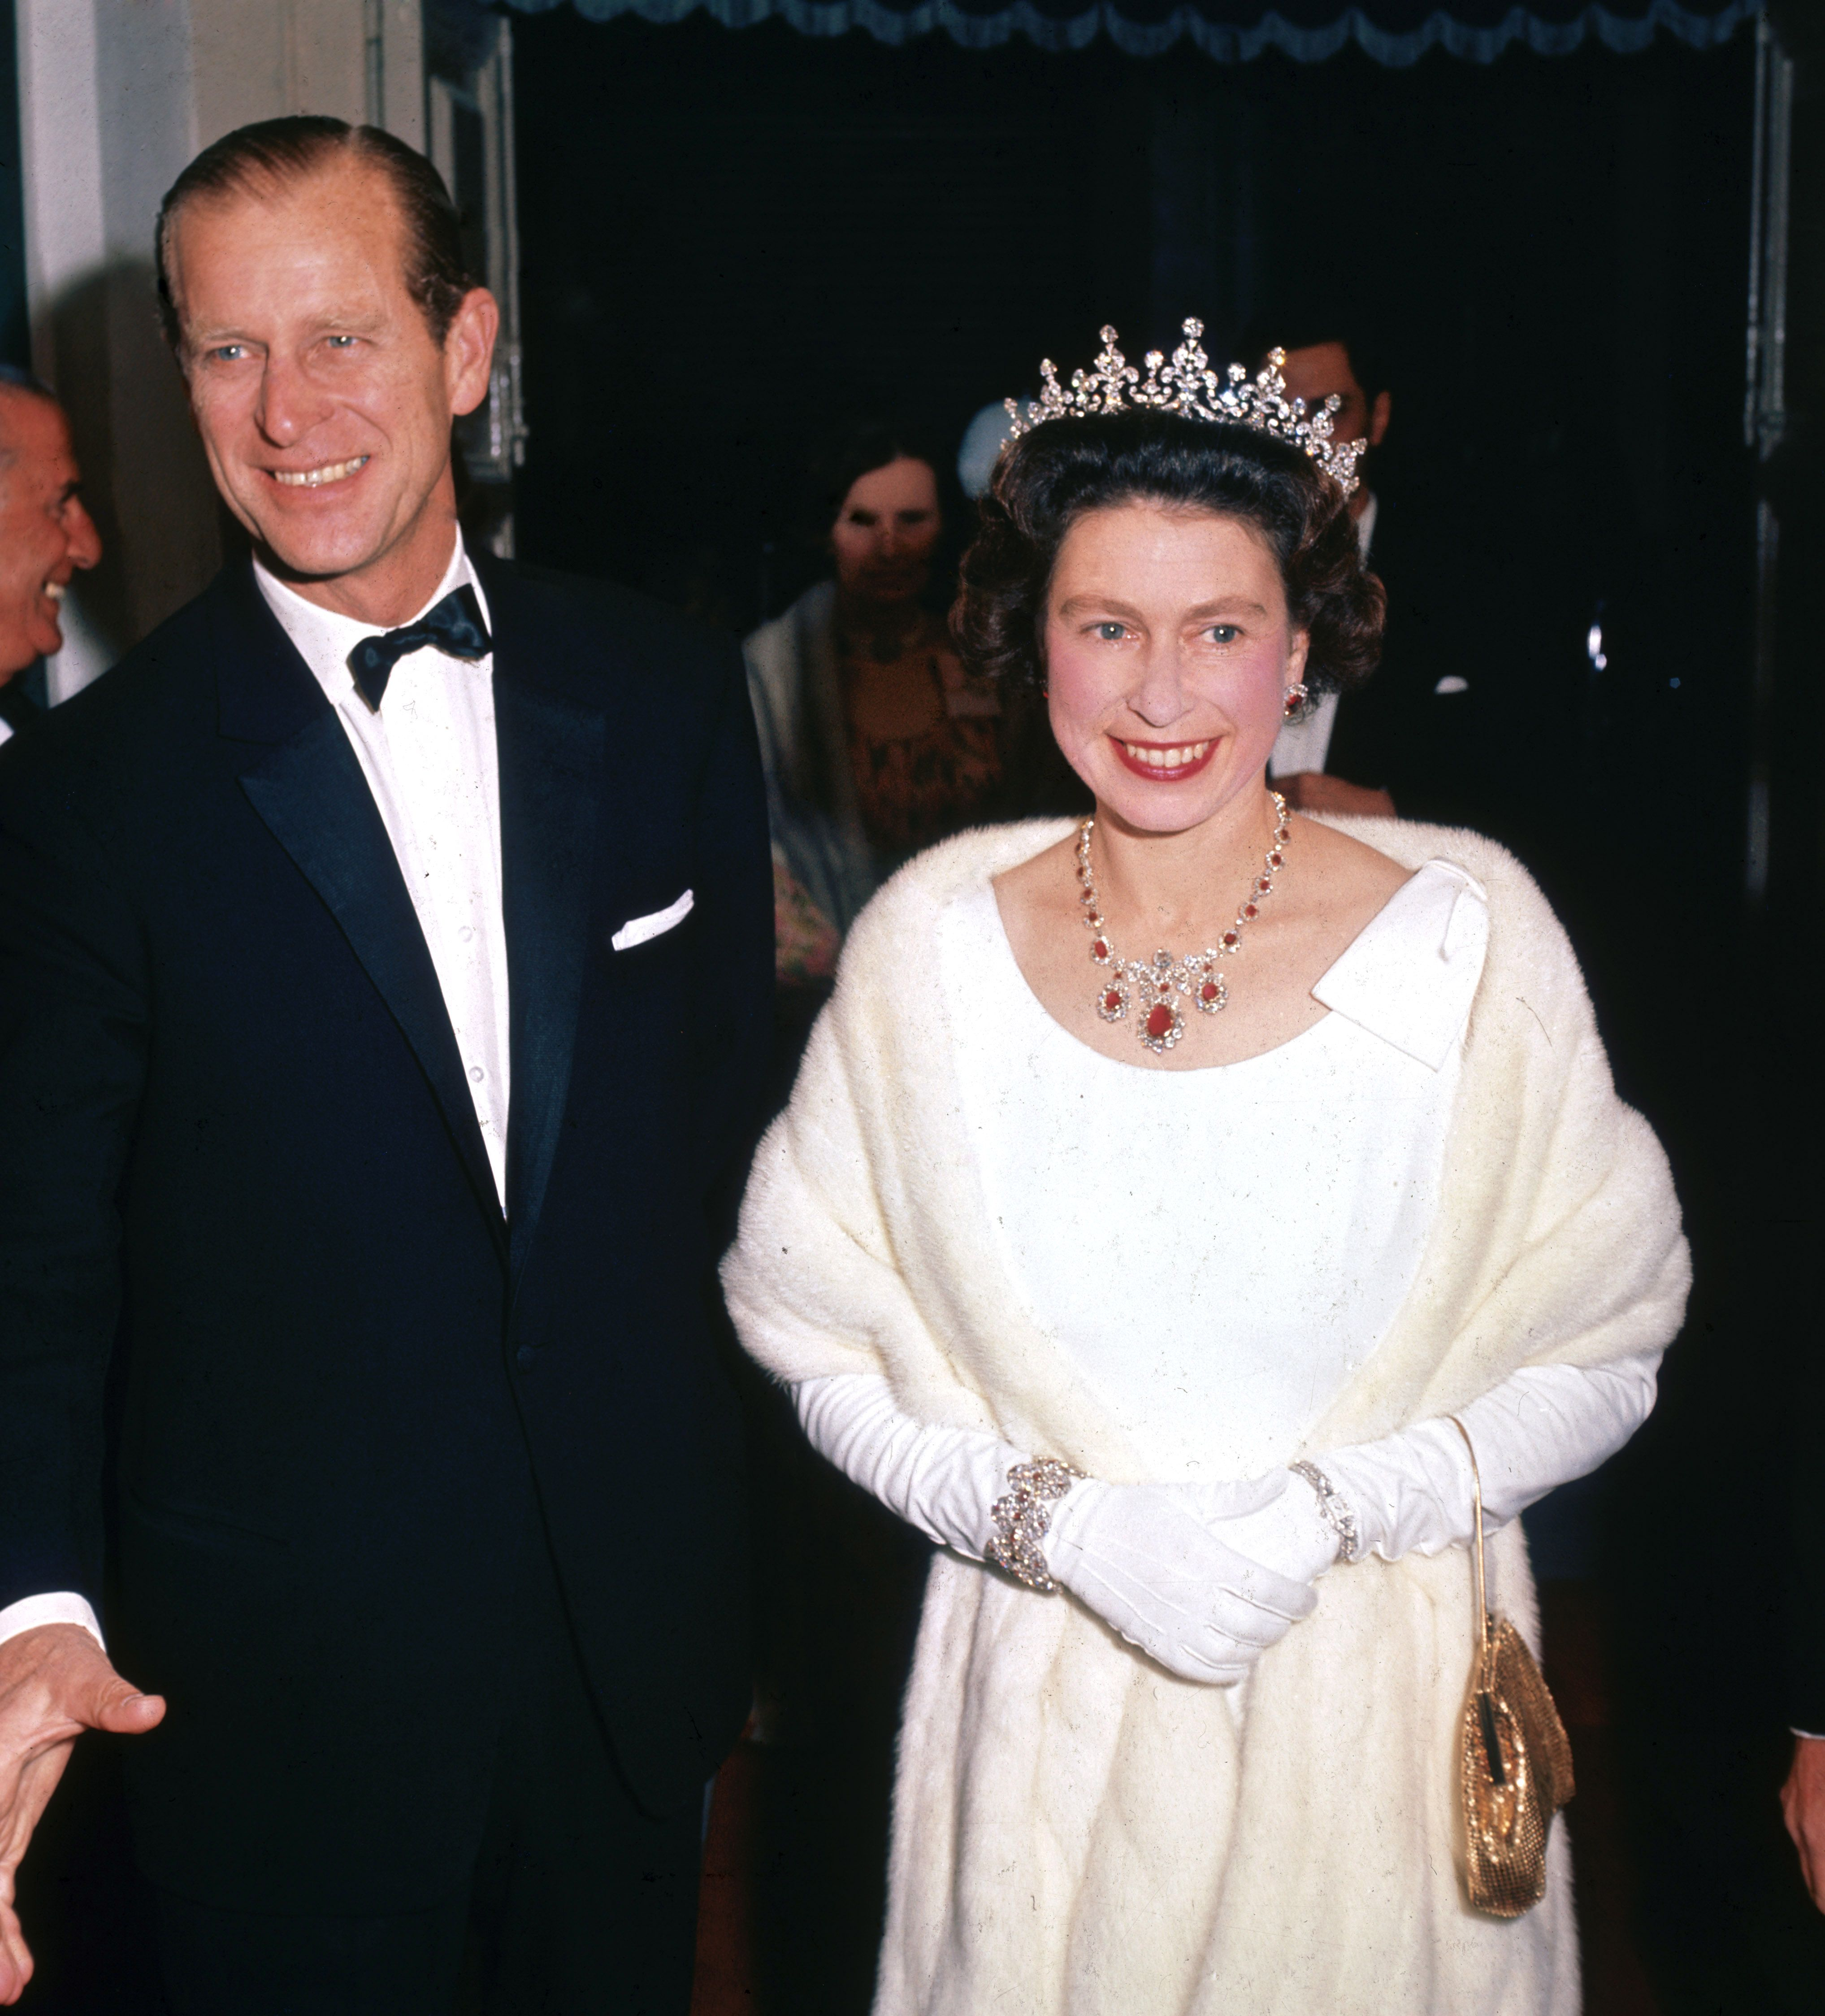 1967 Queen Elizabeth II and Prince Philip in Malta